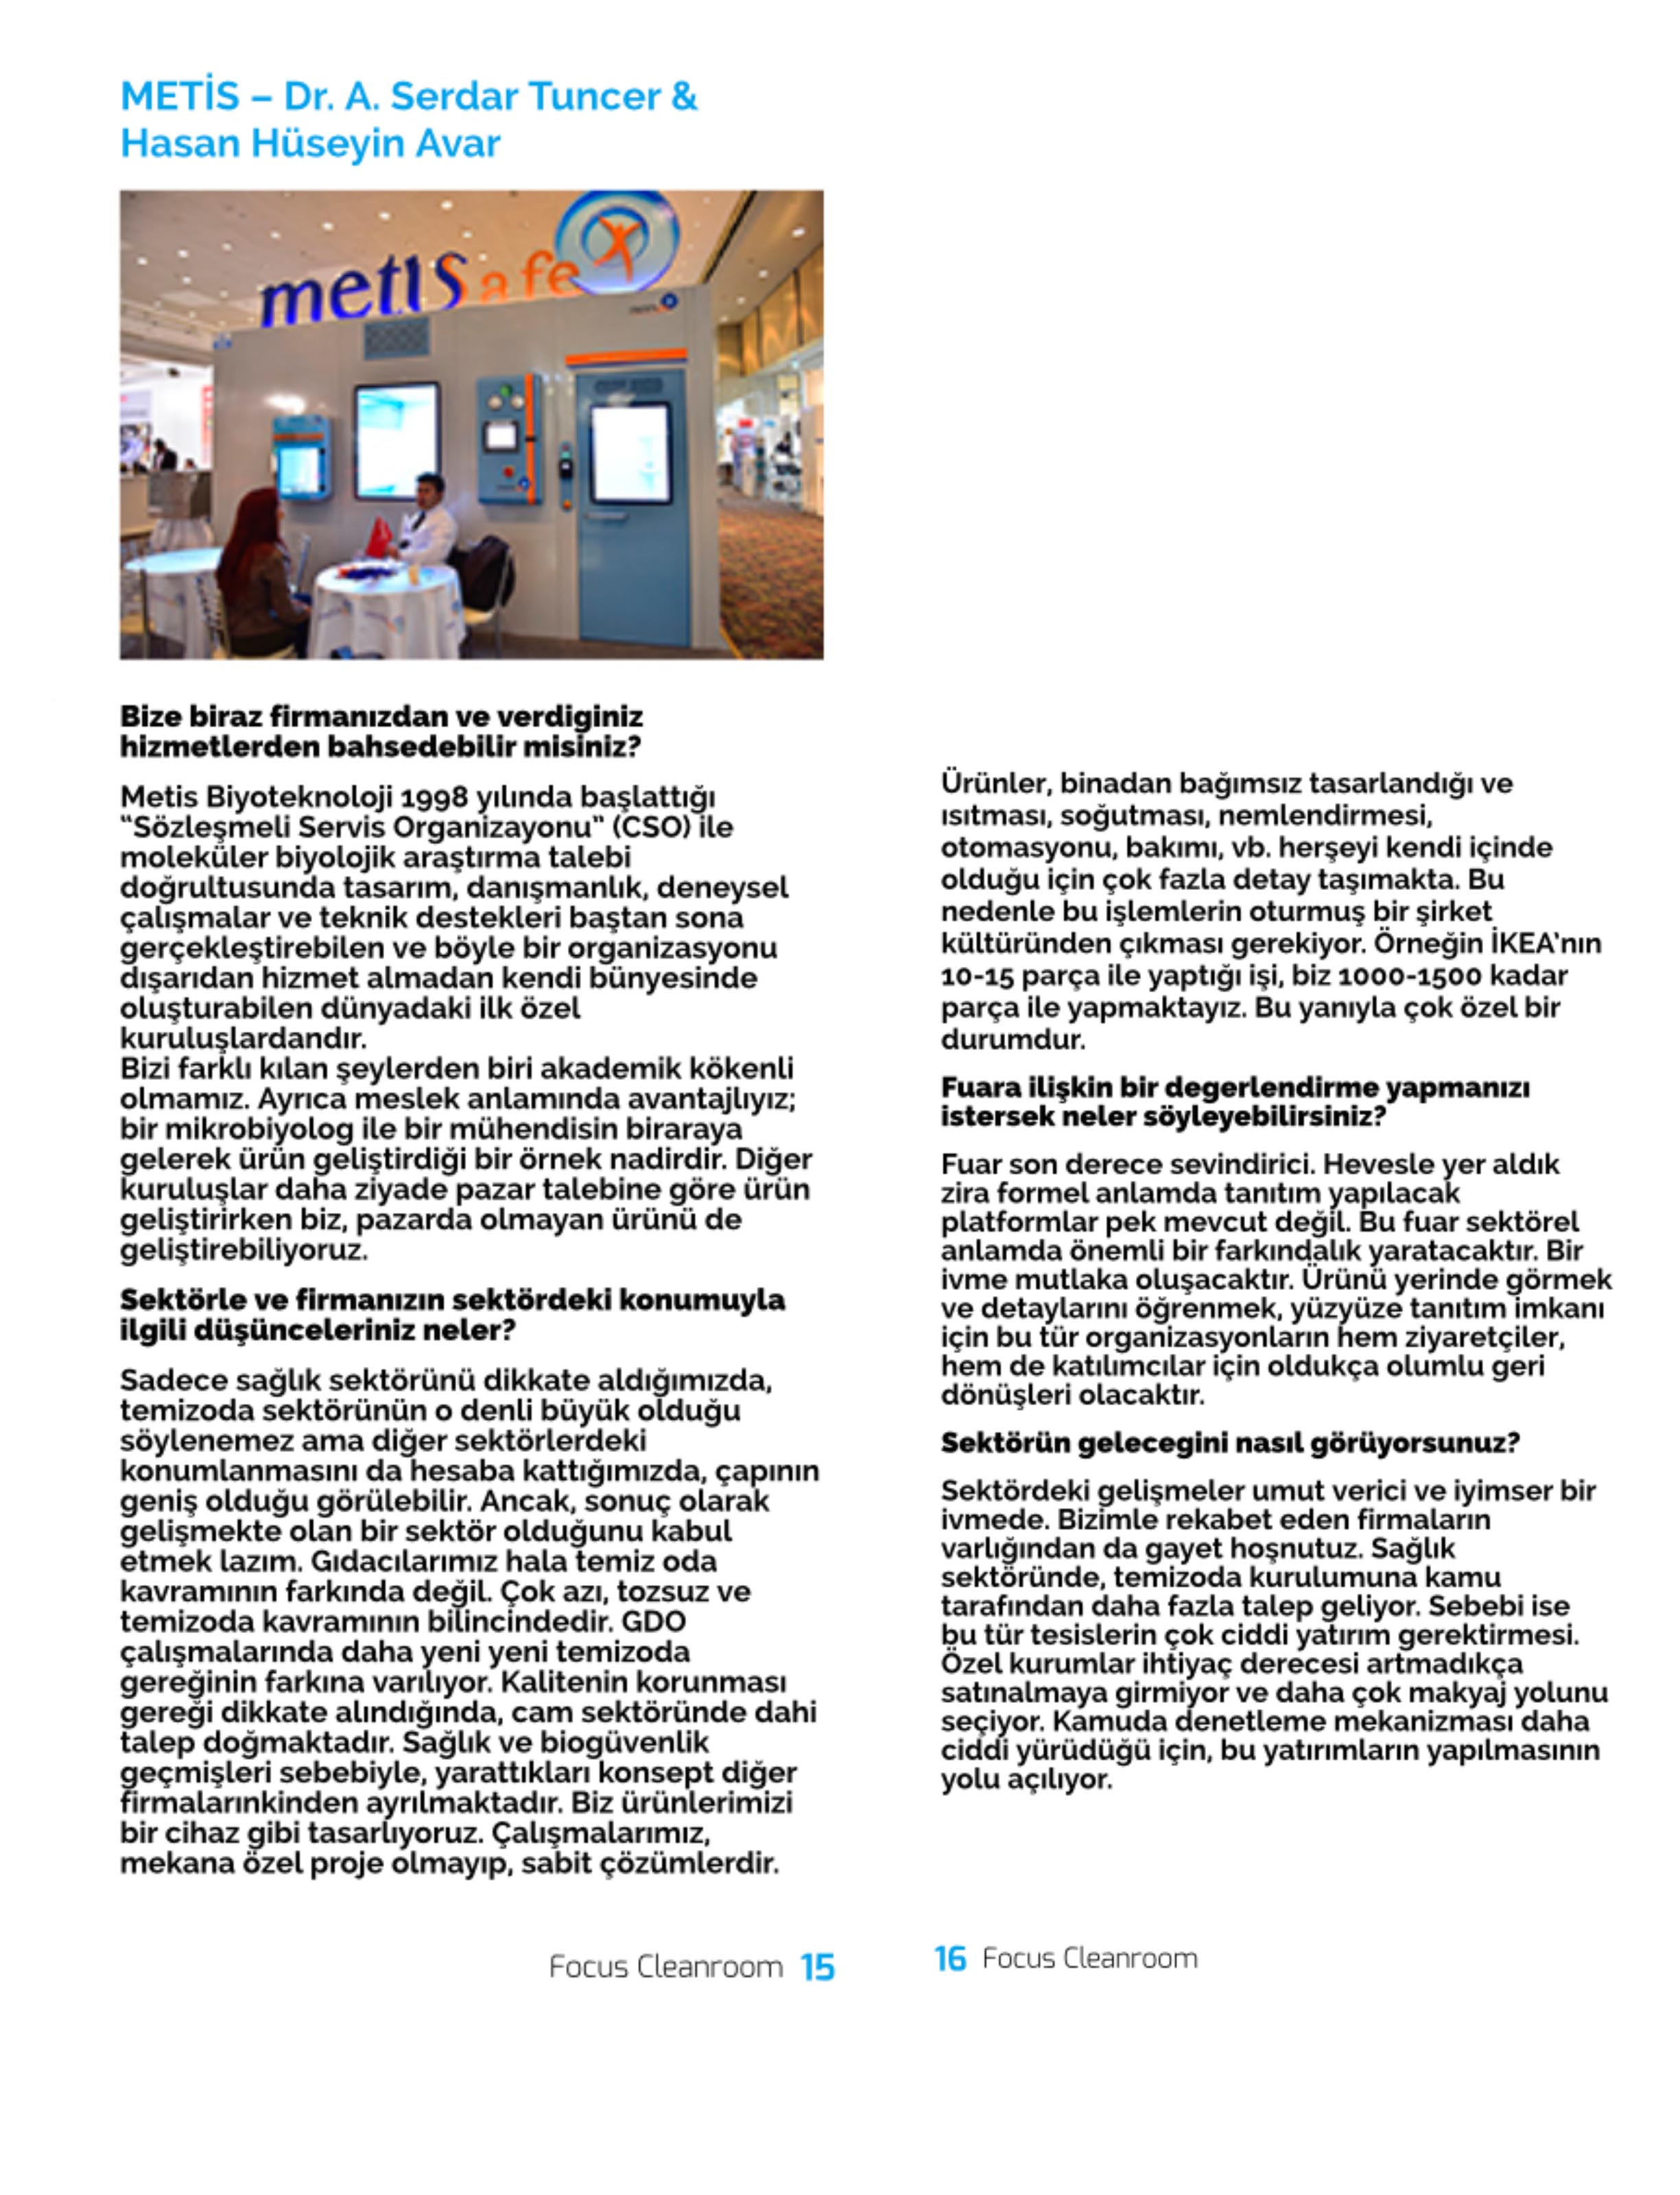 7/12/2015 - Focus Clean Room Magazine Metis Reportage: focuscleanroom.com June 2015